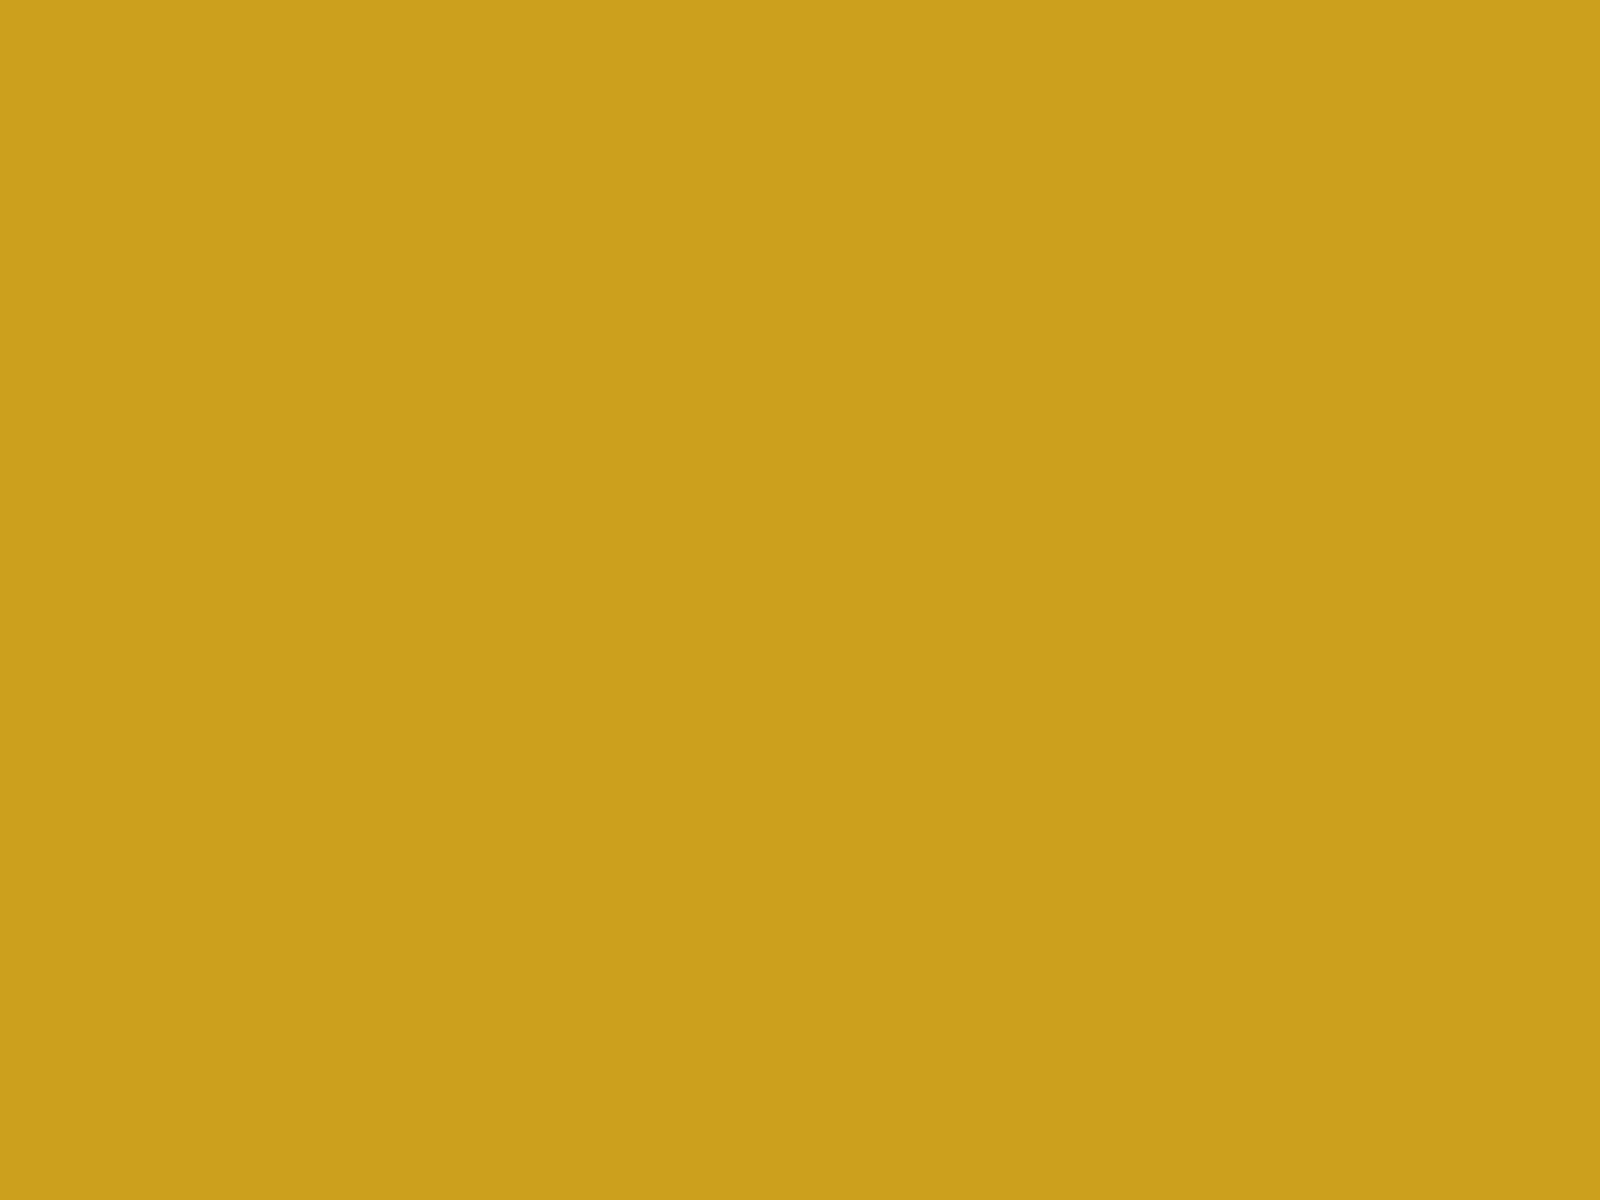 1600x1200 Lemon Curry Solid Color Background